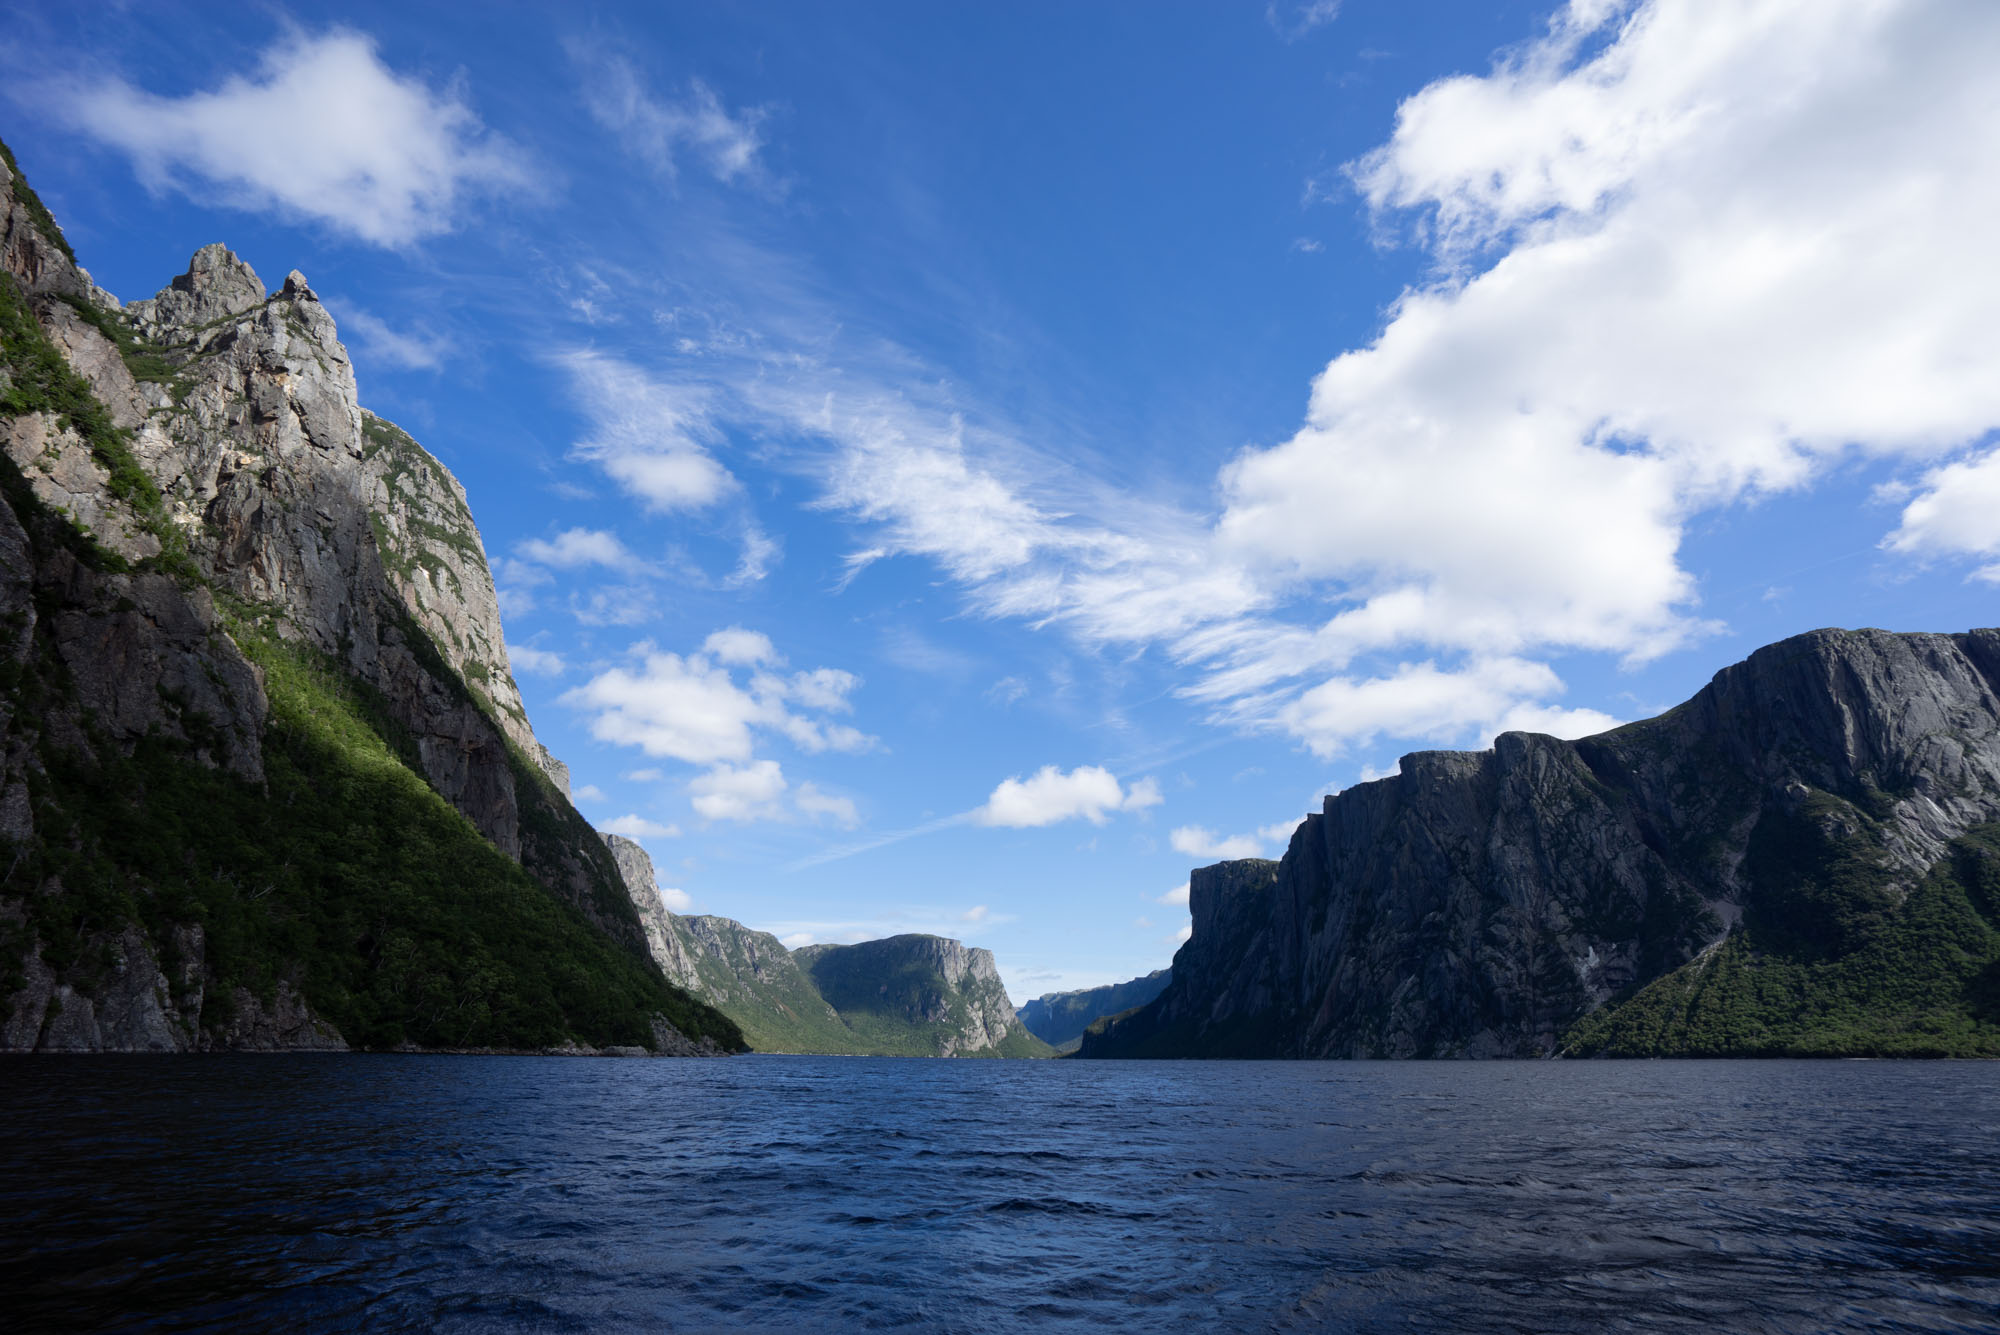 Western Brook Pond from the water